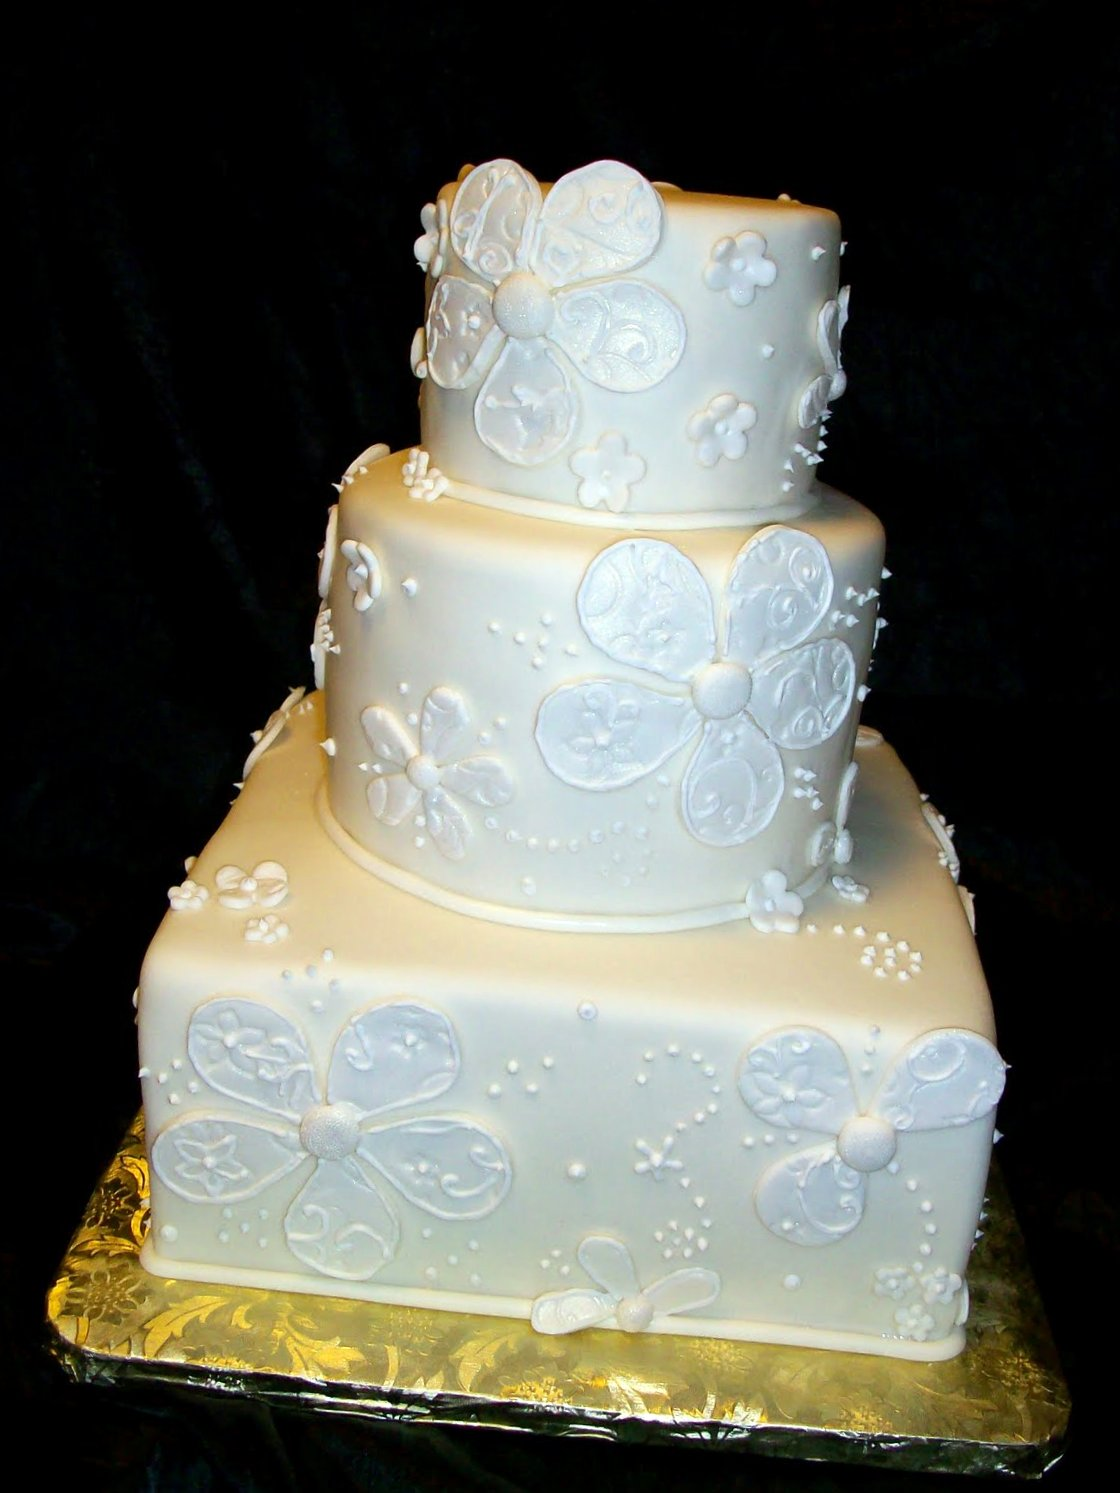 gloria 39 s blog 50th wedding anniversary cake. Black Bedroom Furniture Sets. Home Design Ideas